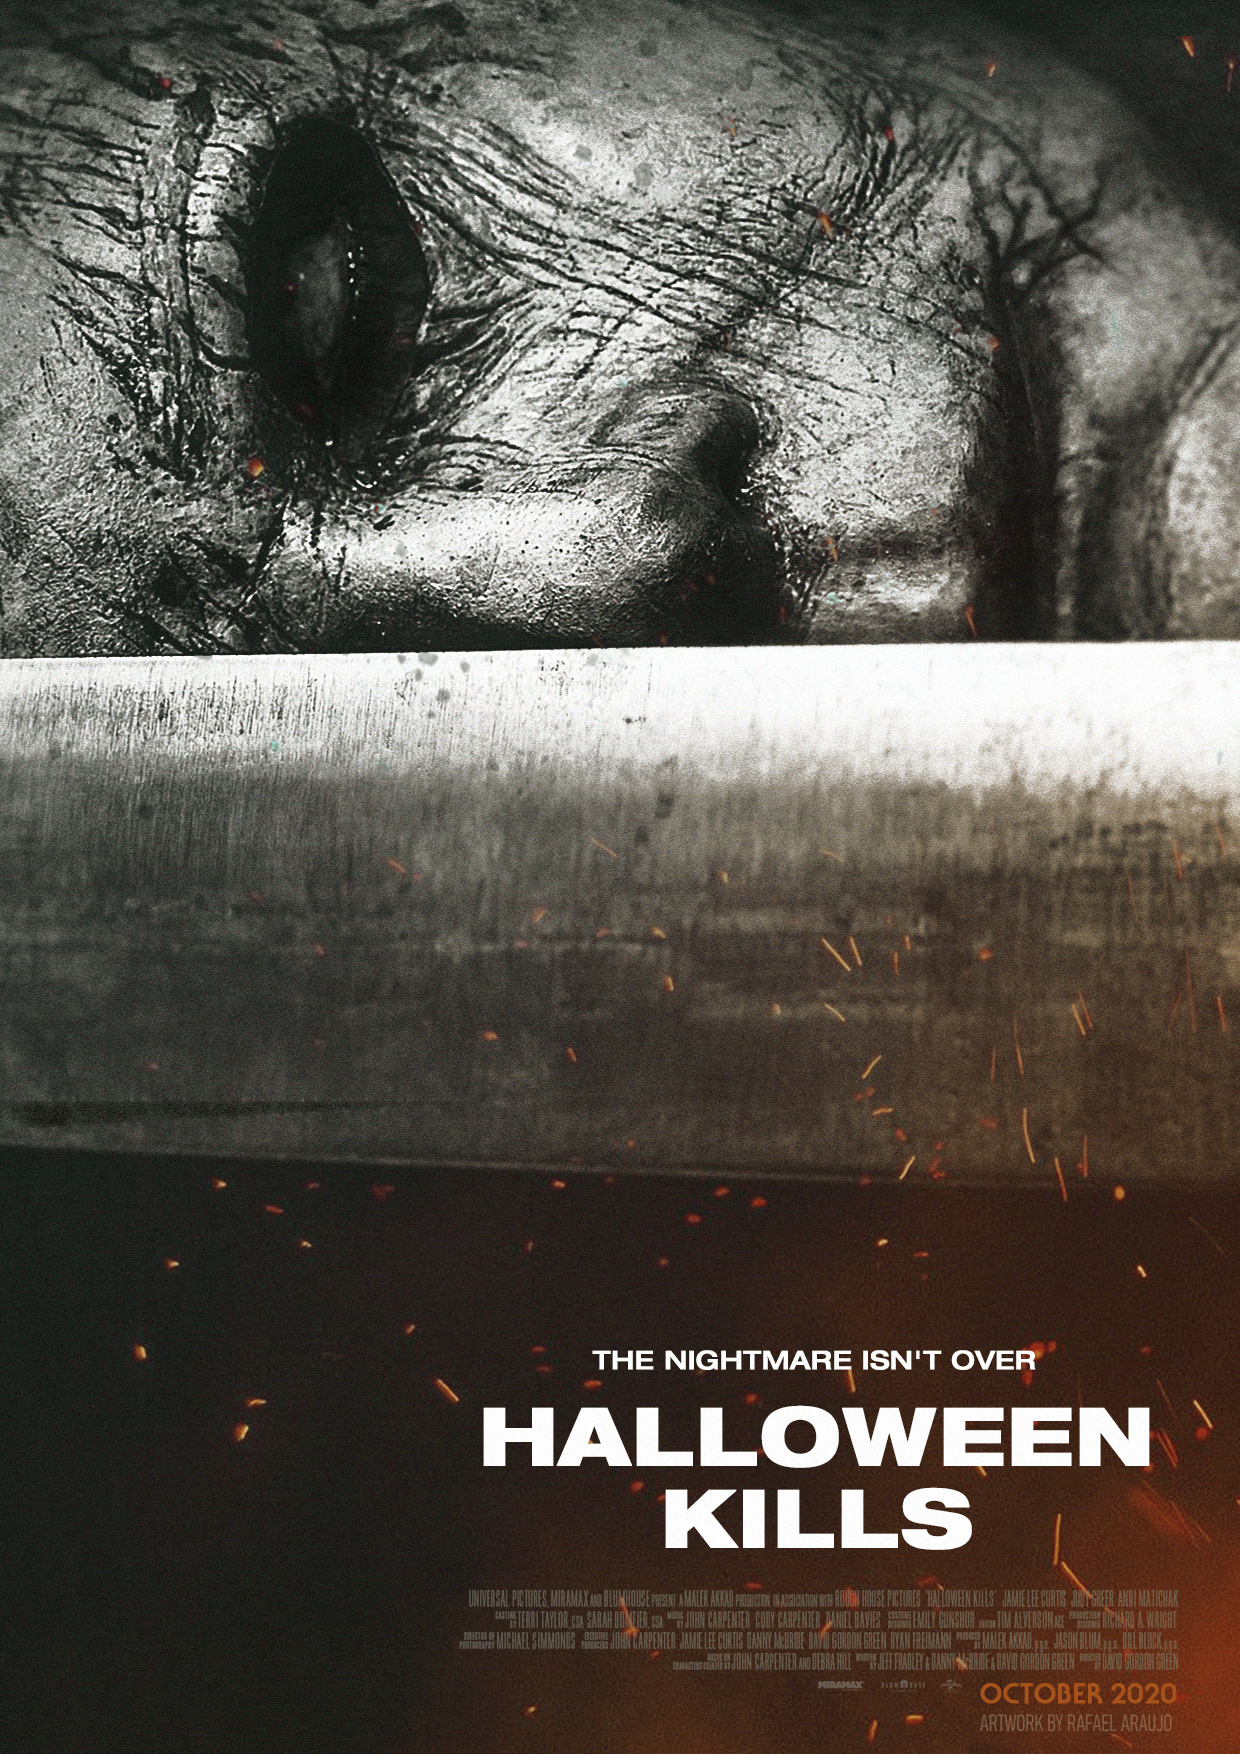 Halloween 2020 Teaster Poster Halloween Kills (2020) Teaser Poster #3 by amazing zuckonit on